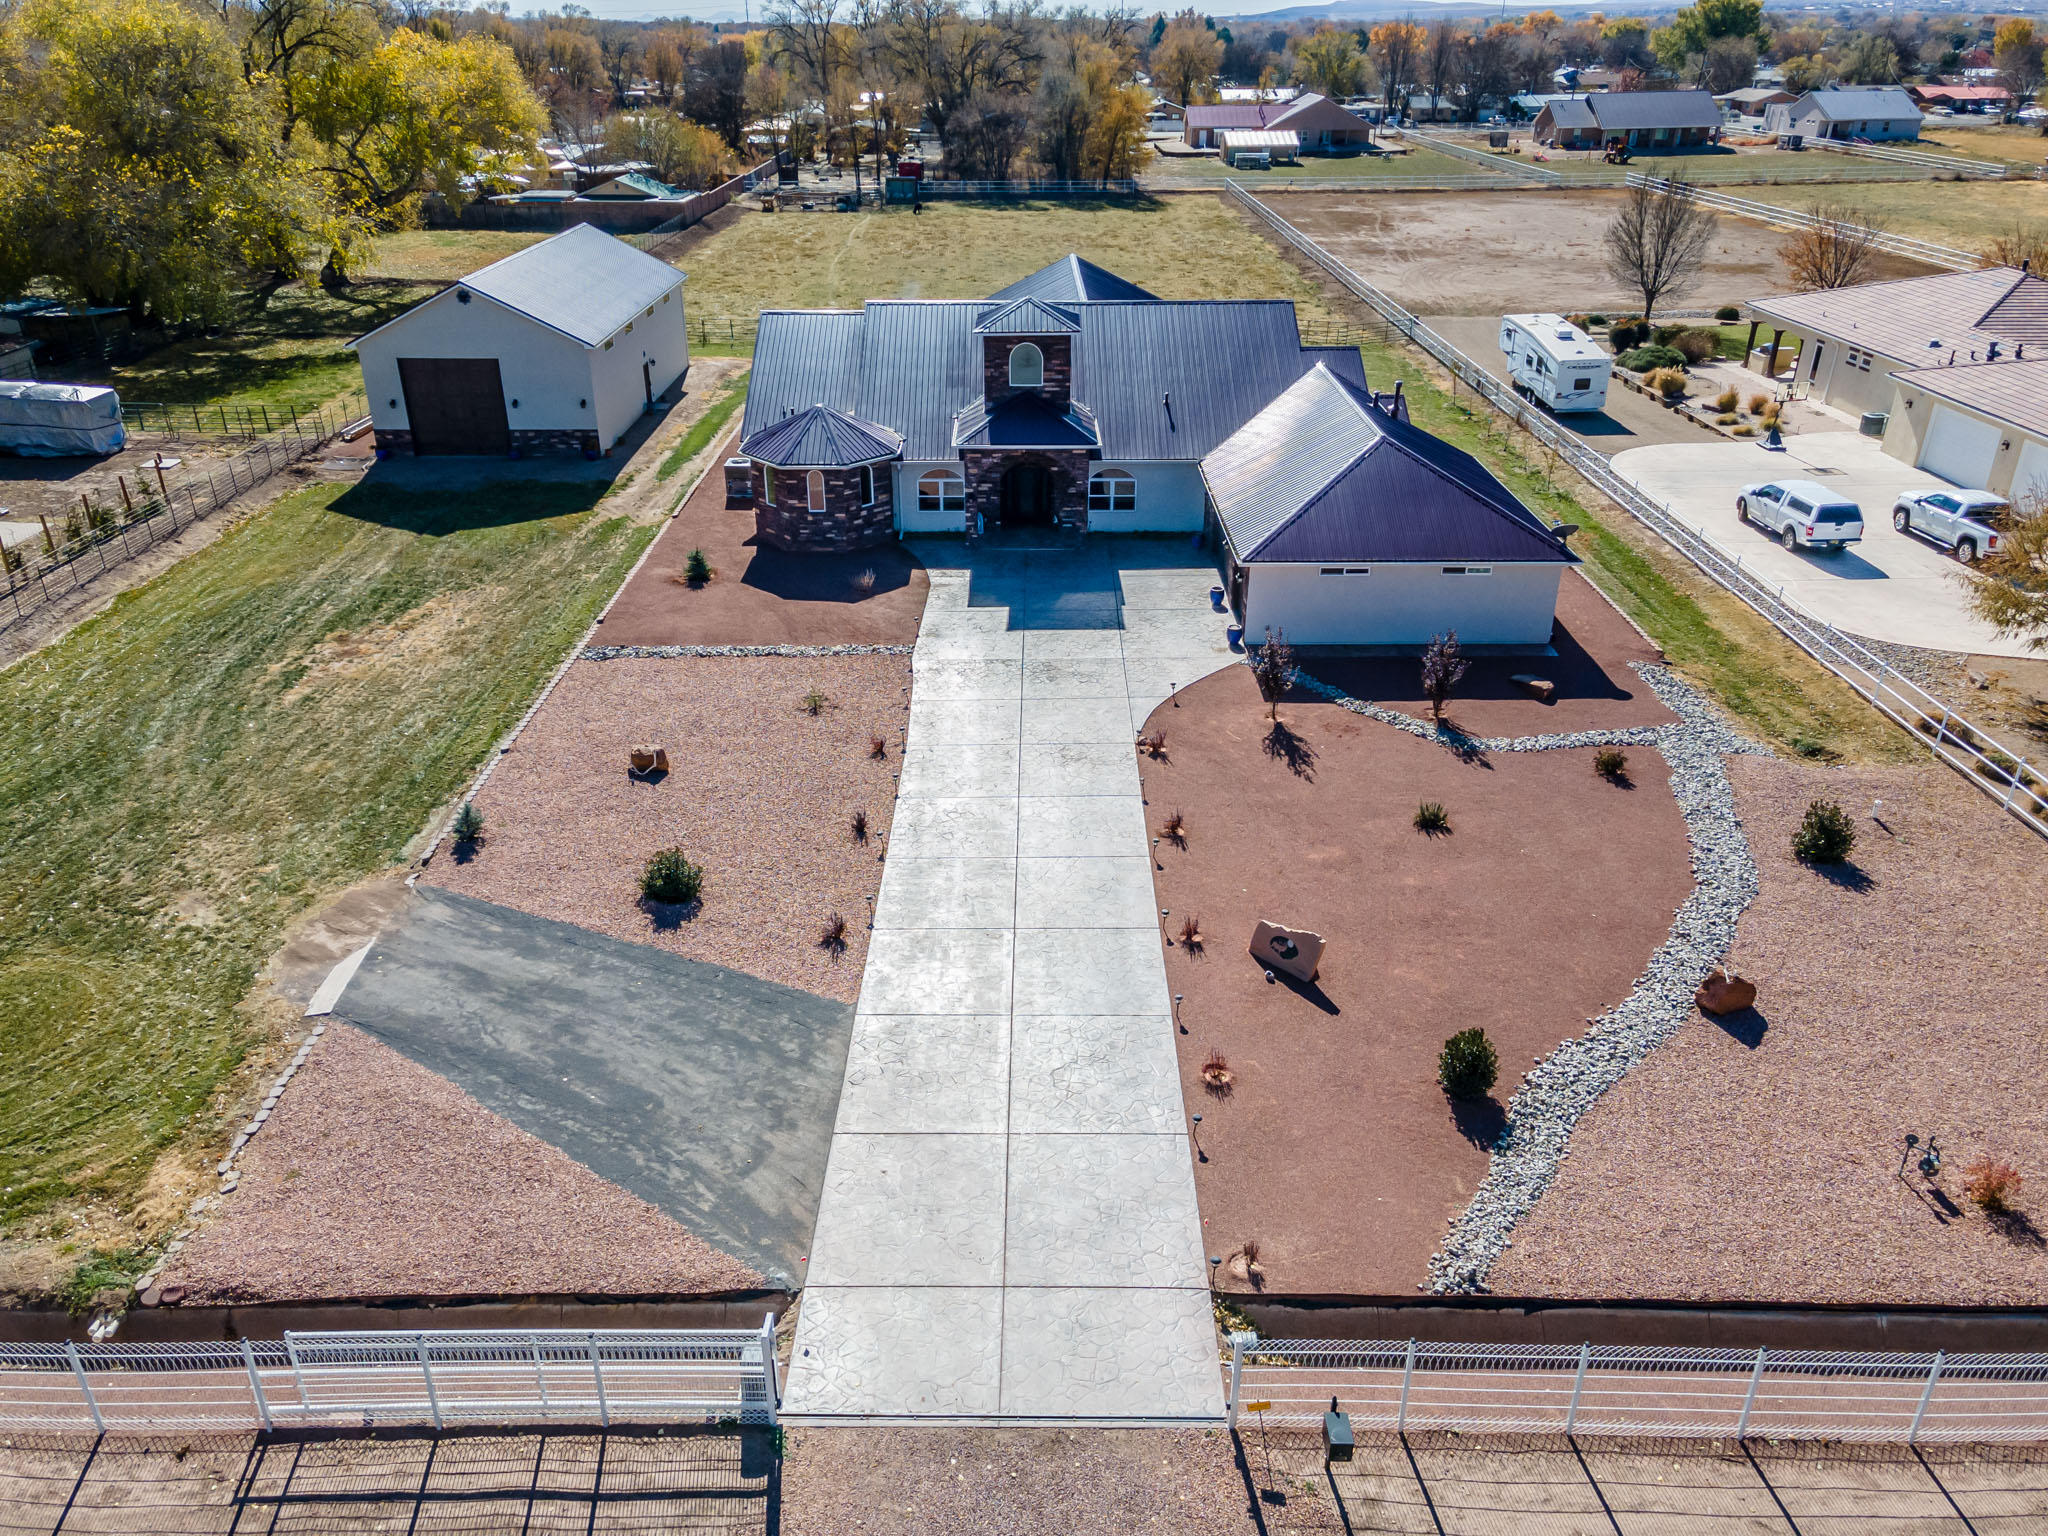 This absolutely stunning custom in the south valley is on 2.25 irrigated acres.   The gated and fully fenced property invites you into the grand entry with atrium foyer. The open floor plan, offers, formal living room, formal dining room, gathering room, and game room for entertaining.  Outdoor tiled living space offers additional gathering in front of the wood burning fireplace and gas stub out for outdoor living. Grand master bedroom with sitting area, soaking tub, inifinity dual shower, and large walk in closets are an added plus. The  2 mini masters offer private baths, walk in closets, and are oversized for added tranquility. The office/study bonuses as a 4th bedroom with walk in closet as well. Did I mention the sound proof wall throughout for those working and studying from home.